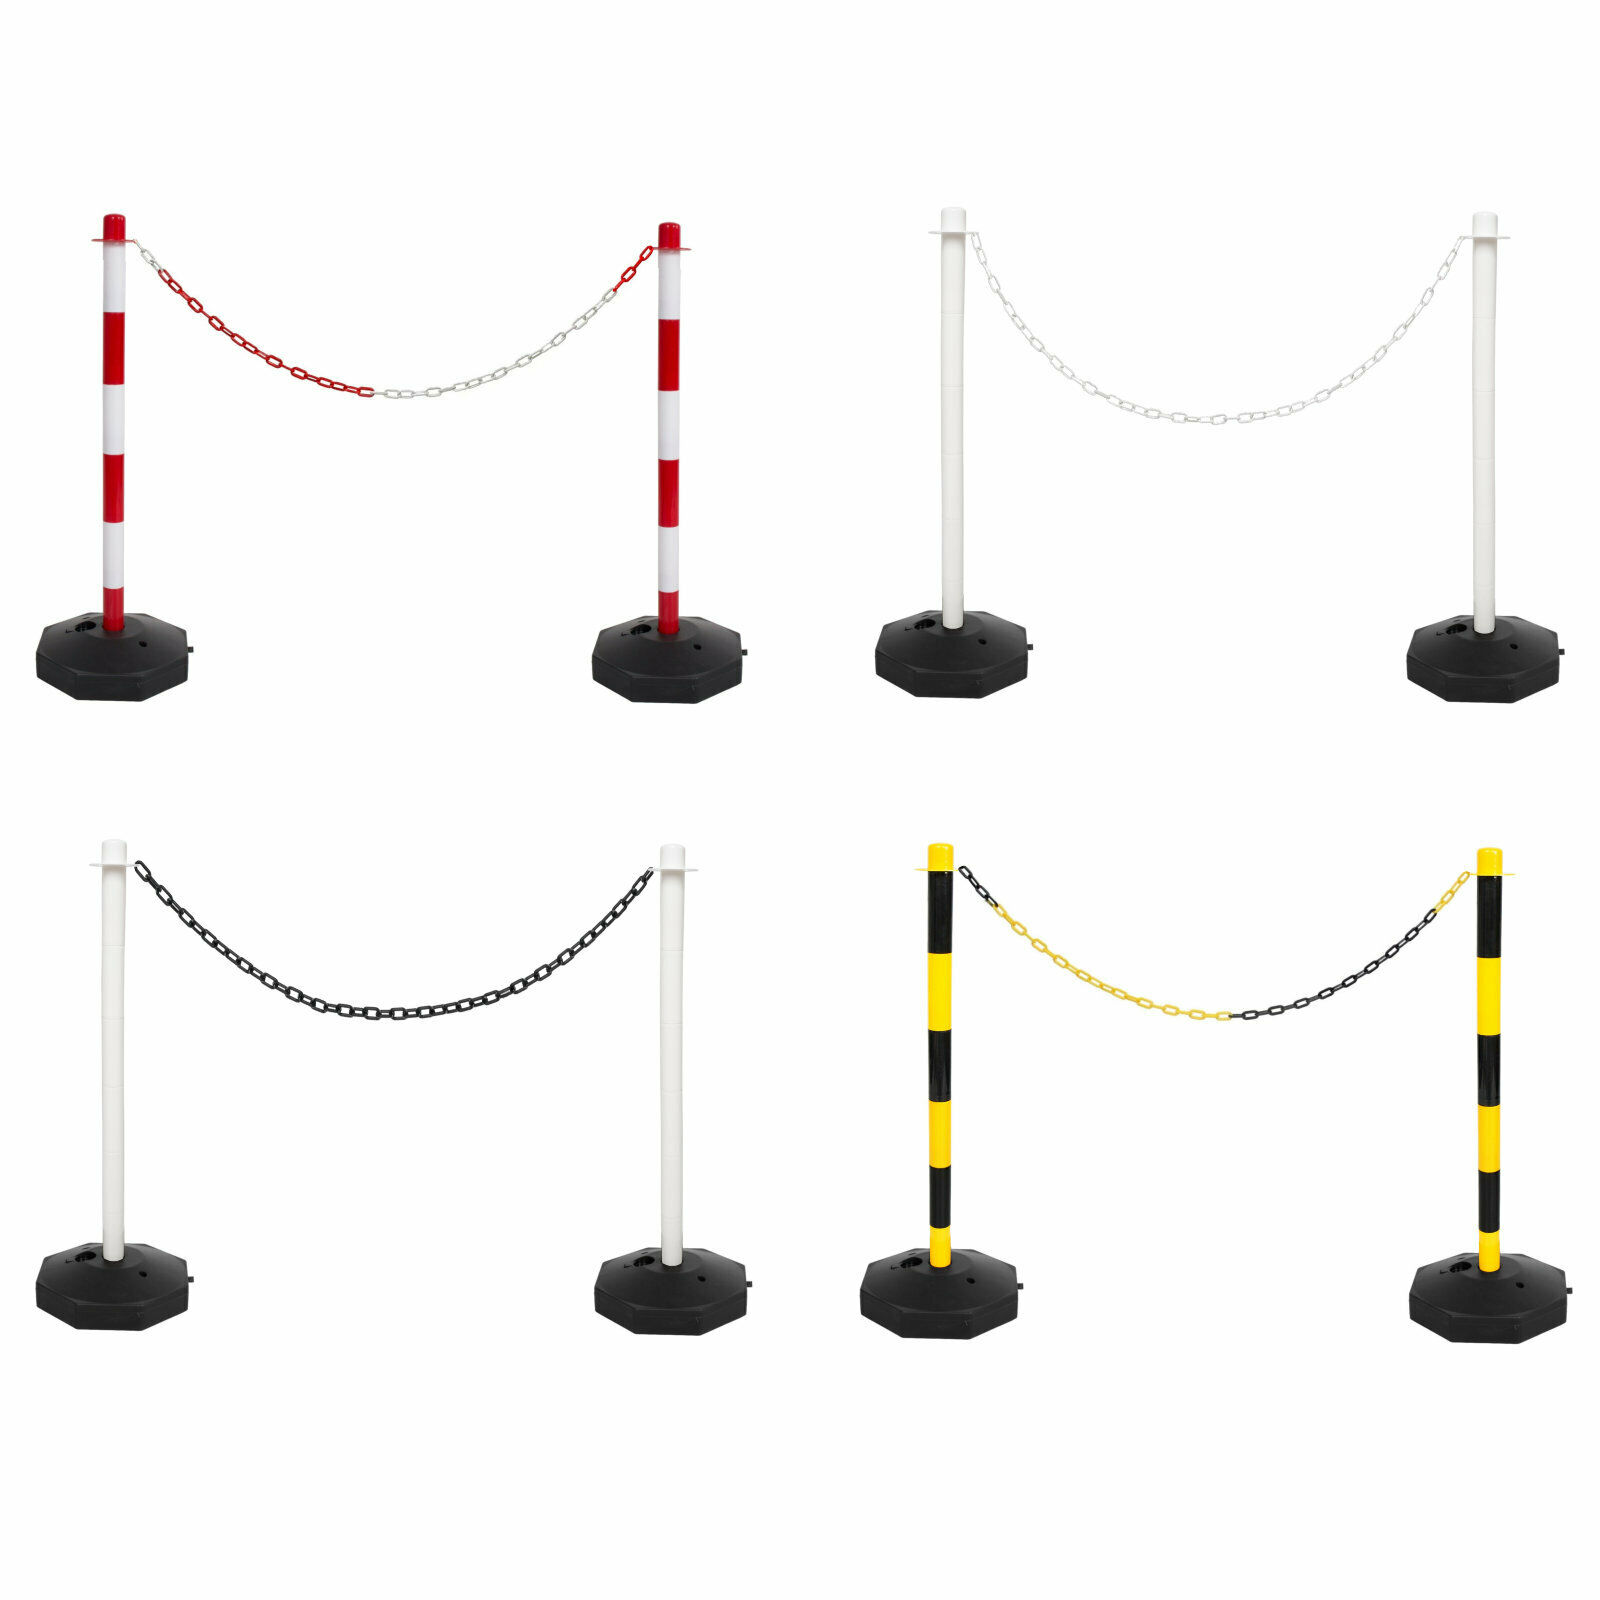 2 Post Base & 5m Plastic Chain Fence Kit Crowd Queue Safety Barrier Security